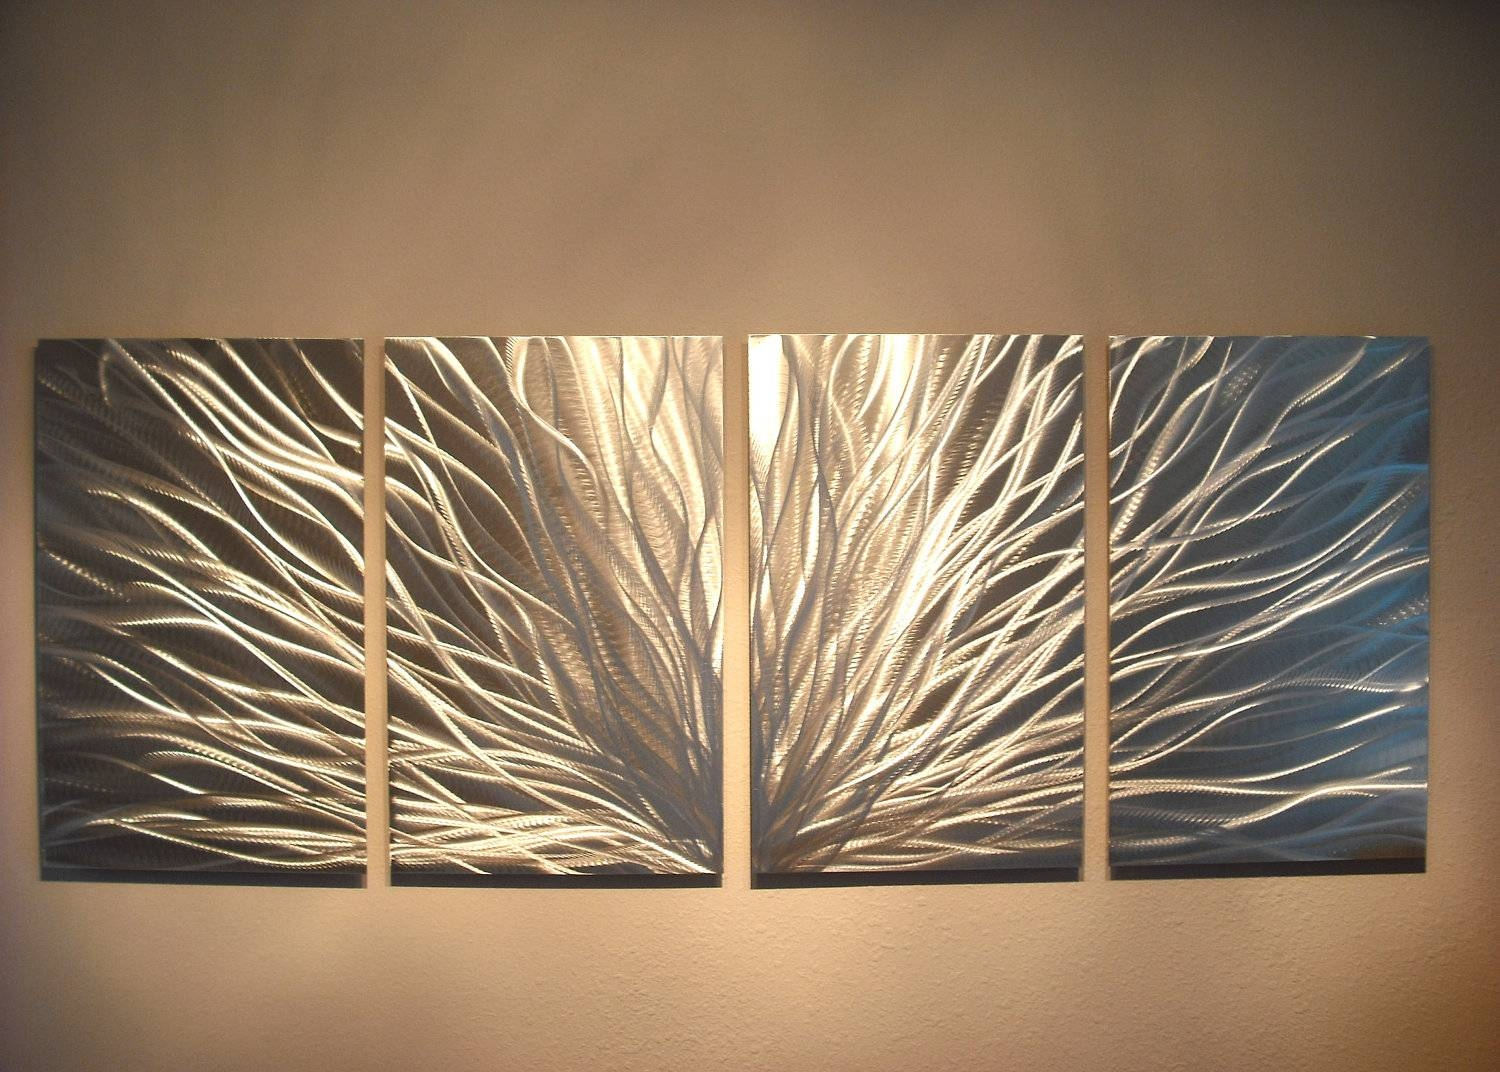 Radiance – Abstract Metal Wall Art Contemporary Modern Decor With Current Large Abstract Metal Wall Art (Gallery 2 of 20)